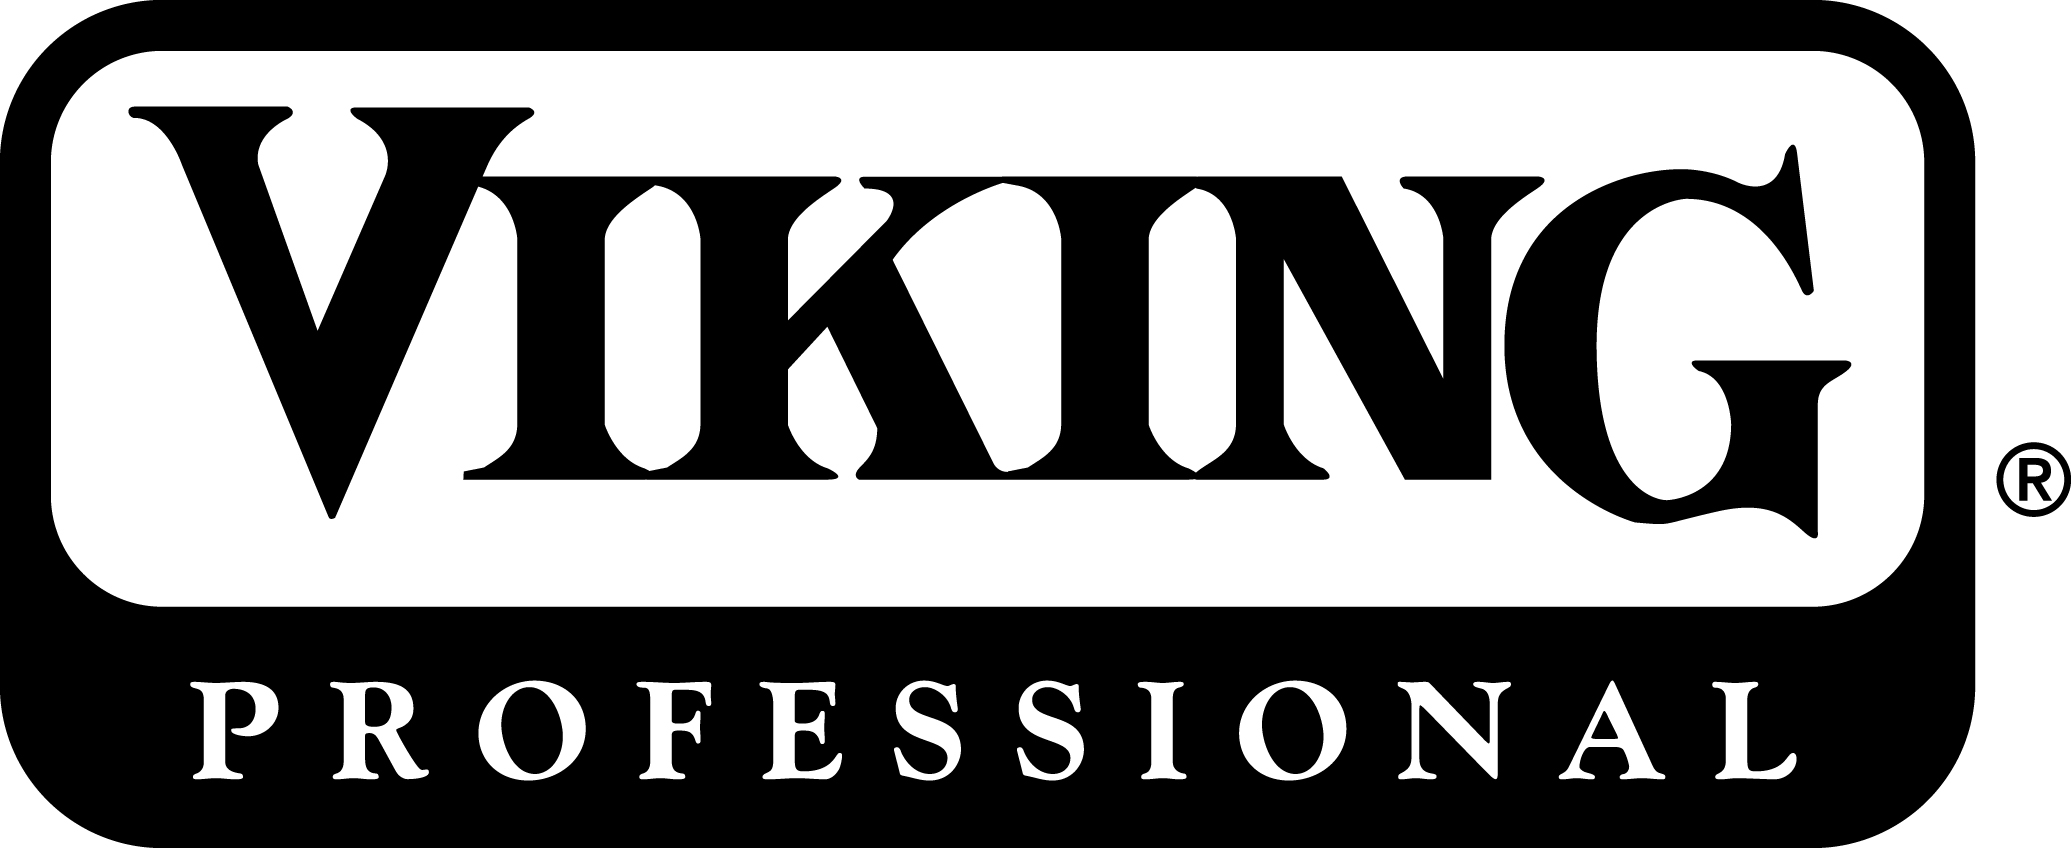 Viking Local Oven Repair, Kenmore Oven Repair